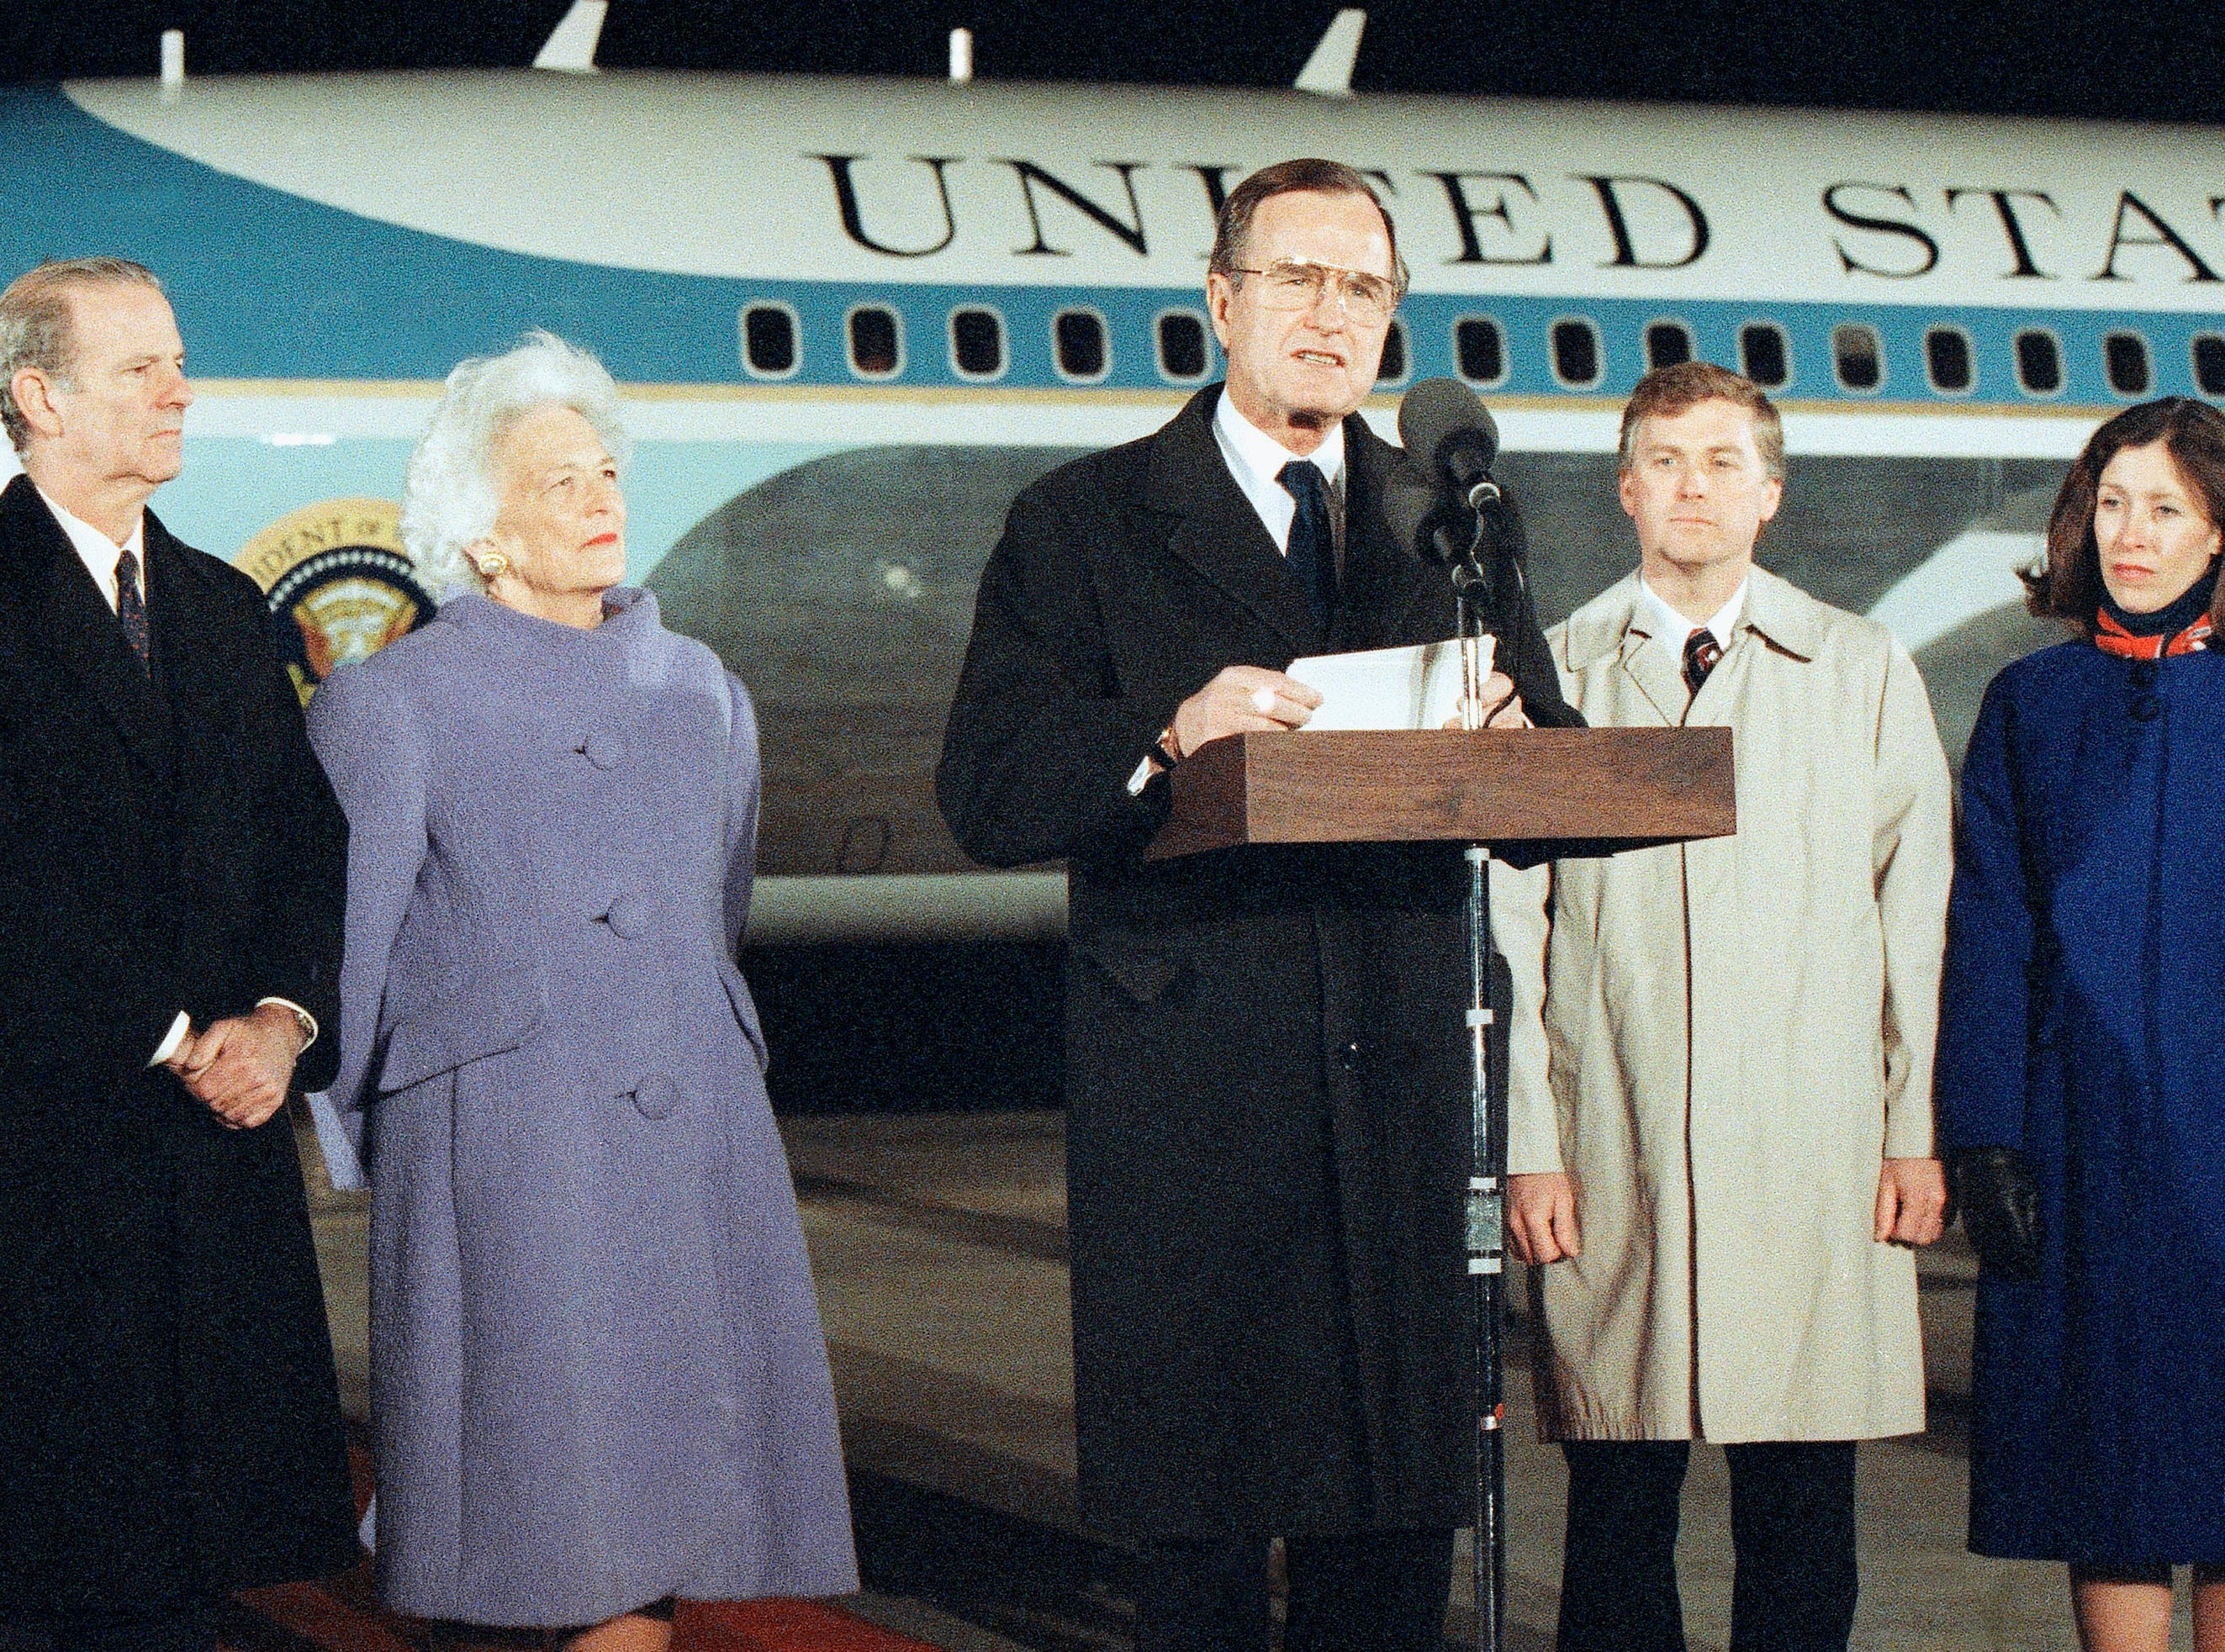 President George H. W. Bush, center, talks to reporters at the base of Air Force One, as he returns to the U.S. following a three nation, Far East visit, Monday, Feb. 28, 1989, Andrews AFB, Maryland. Bush pronounced the five-day Asian voyage a productive and rewarding journey and moved to take personal command of the struggle to win confirmation for John Tower as Defense Secretary. Flanking the president are First Lady Barbara Bush, left, and Vice President Dan Quayle and Marilyn Quayle, at right. The man on the left is unidentified. (AP Photo/Doug Mills)